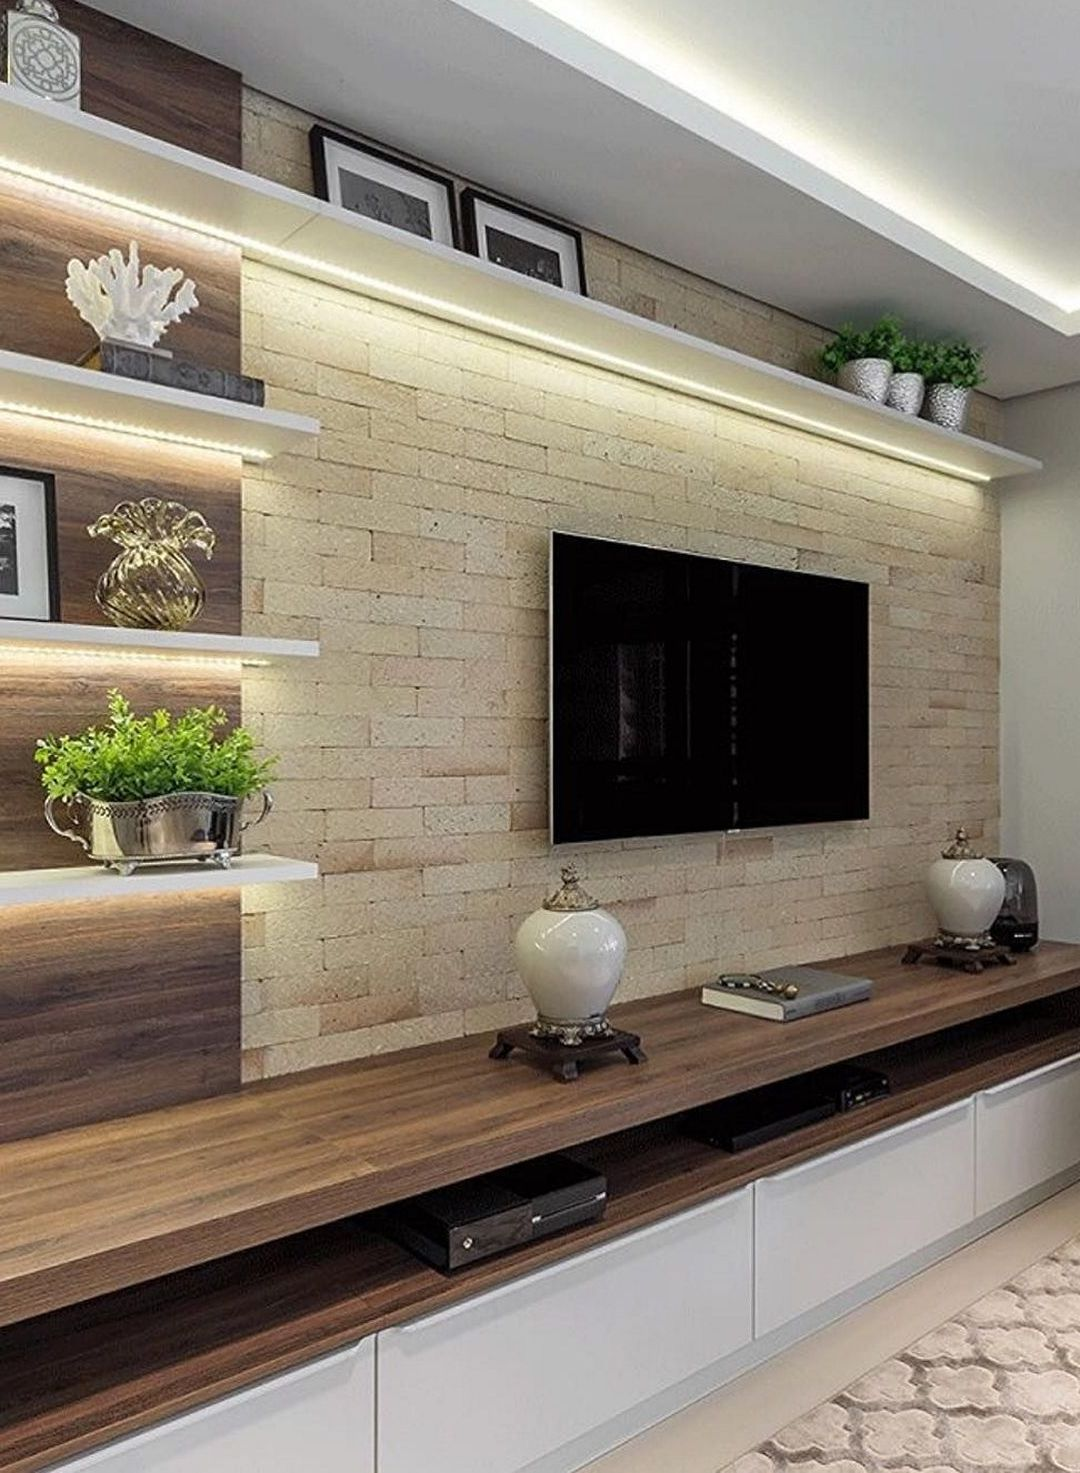 The Perfect Tv Wall Ideas That Will Not Sacrifice Your Look 05 Interiordub